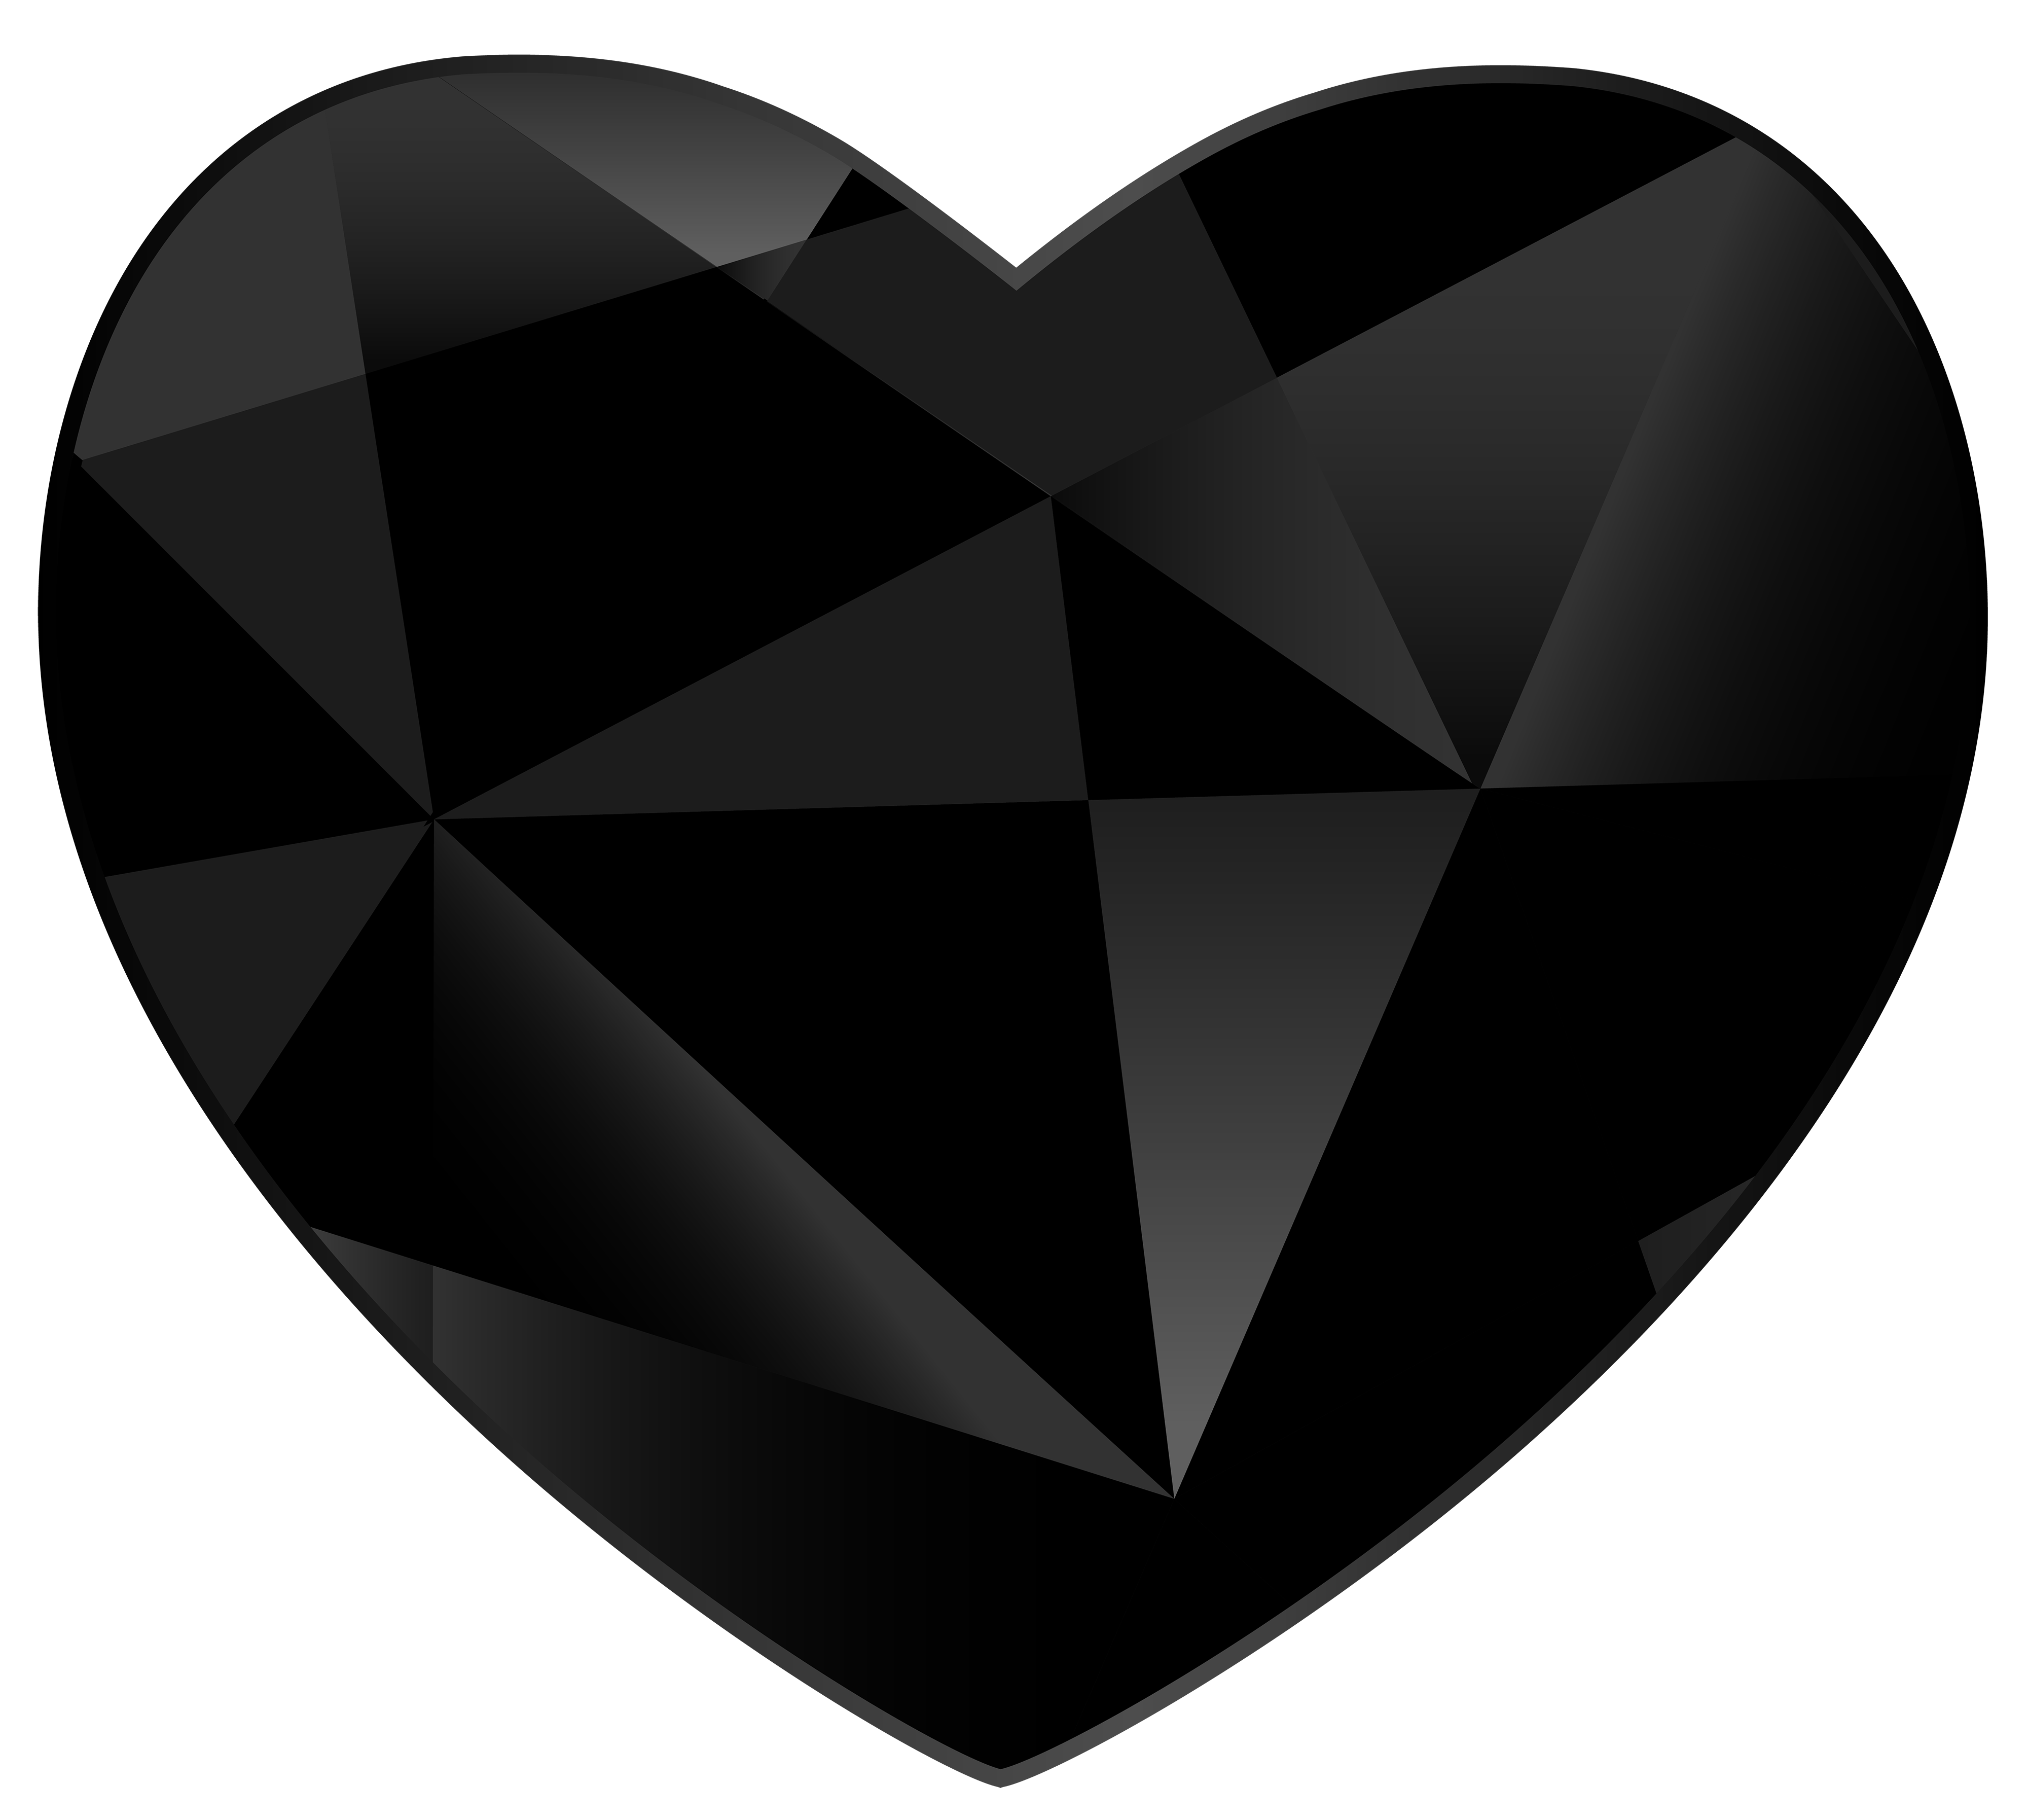 Gem clipart top. Black heart png best